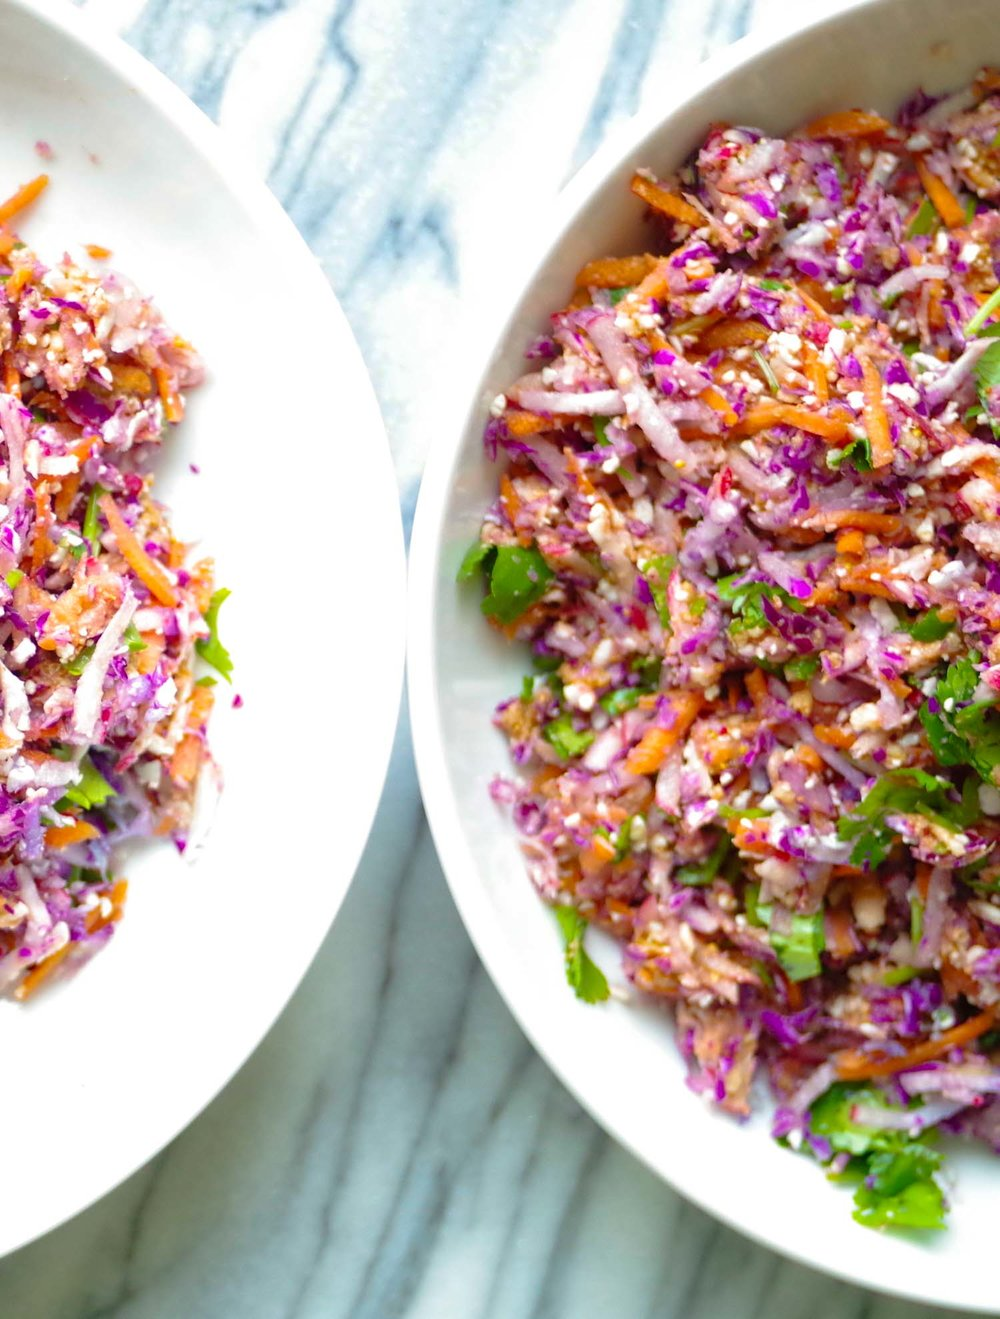 Clean-out-the-fridge Shredded Salad, By Beautiful Ingredient.